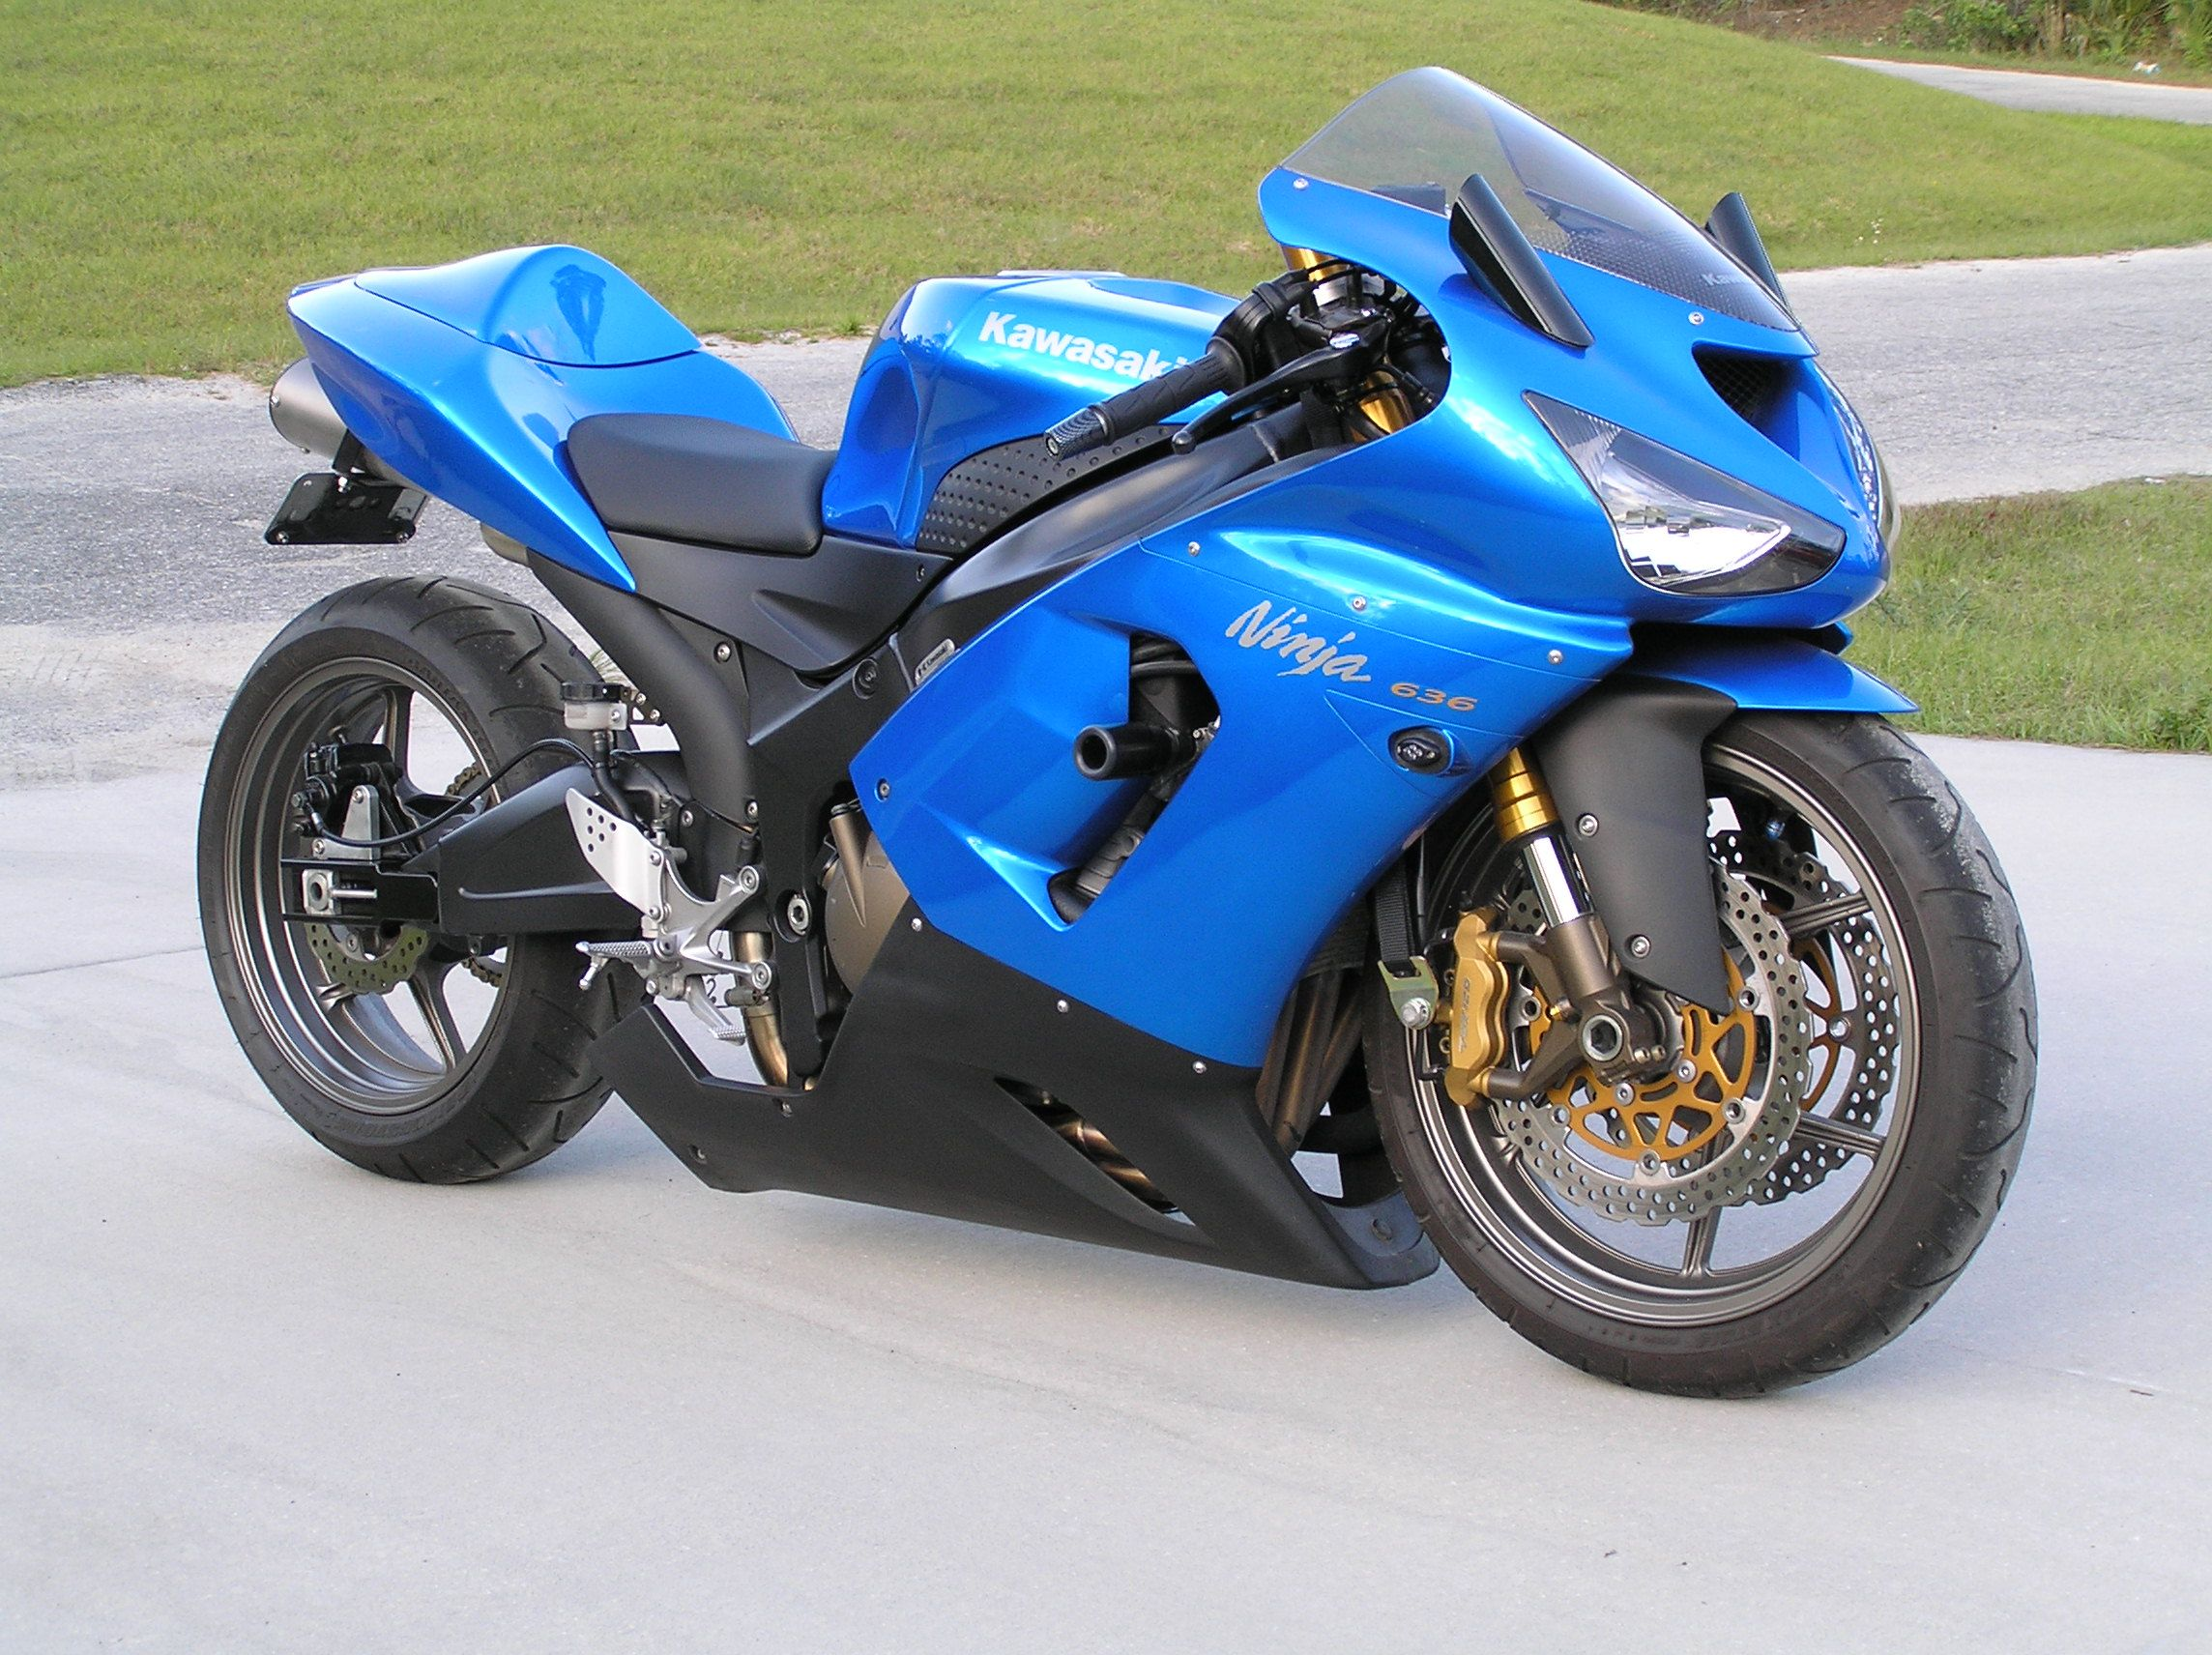 07 zx6r pig - Google Search | Motorcycle parts and accessories ...